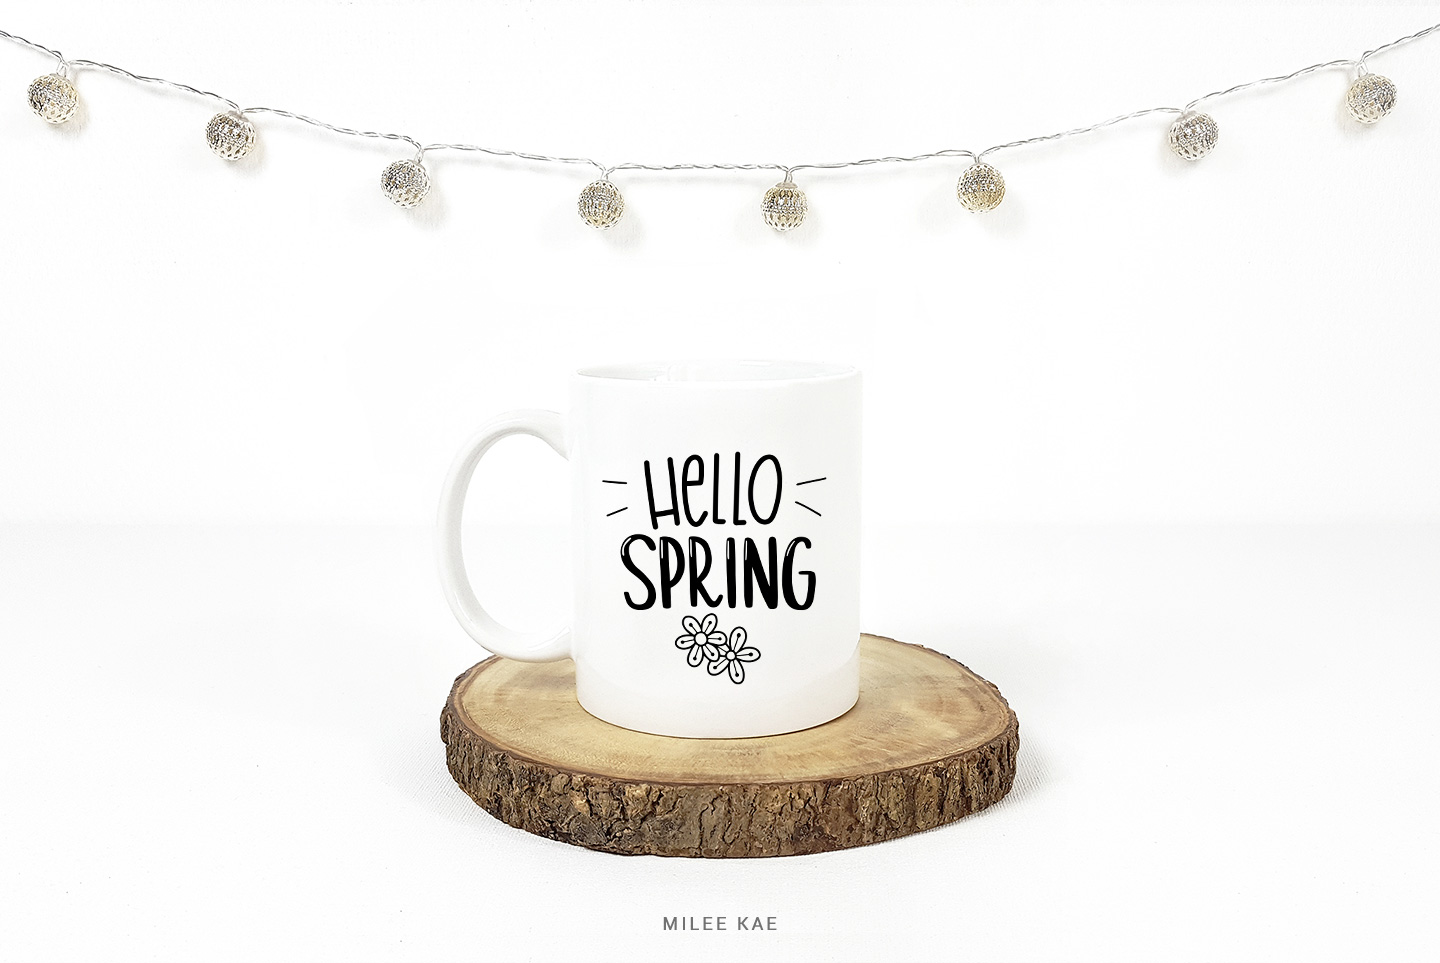 Hello Spring SVG, Cutting file, Decal example image 2